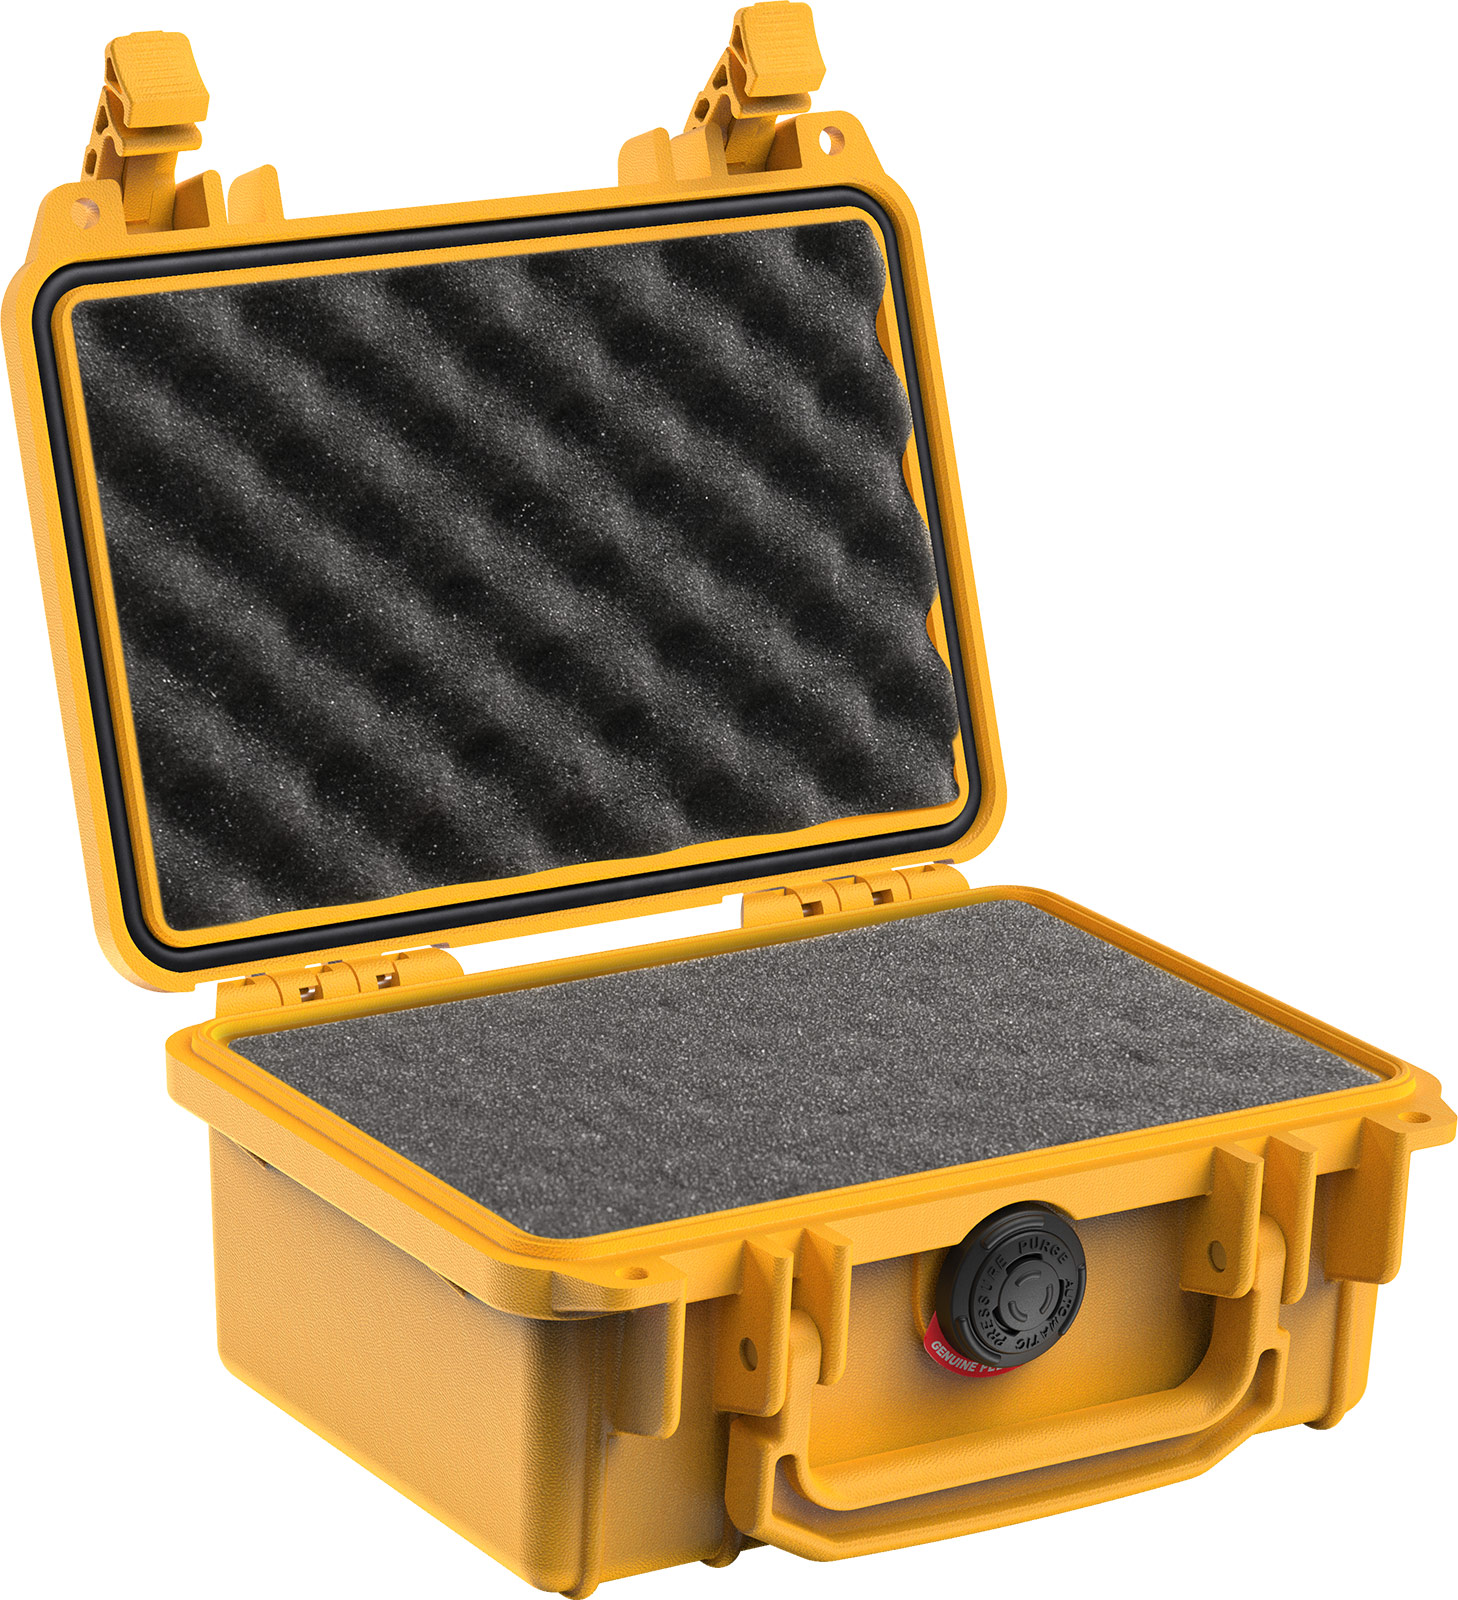 pelican 1120 yellow foam gopro case